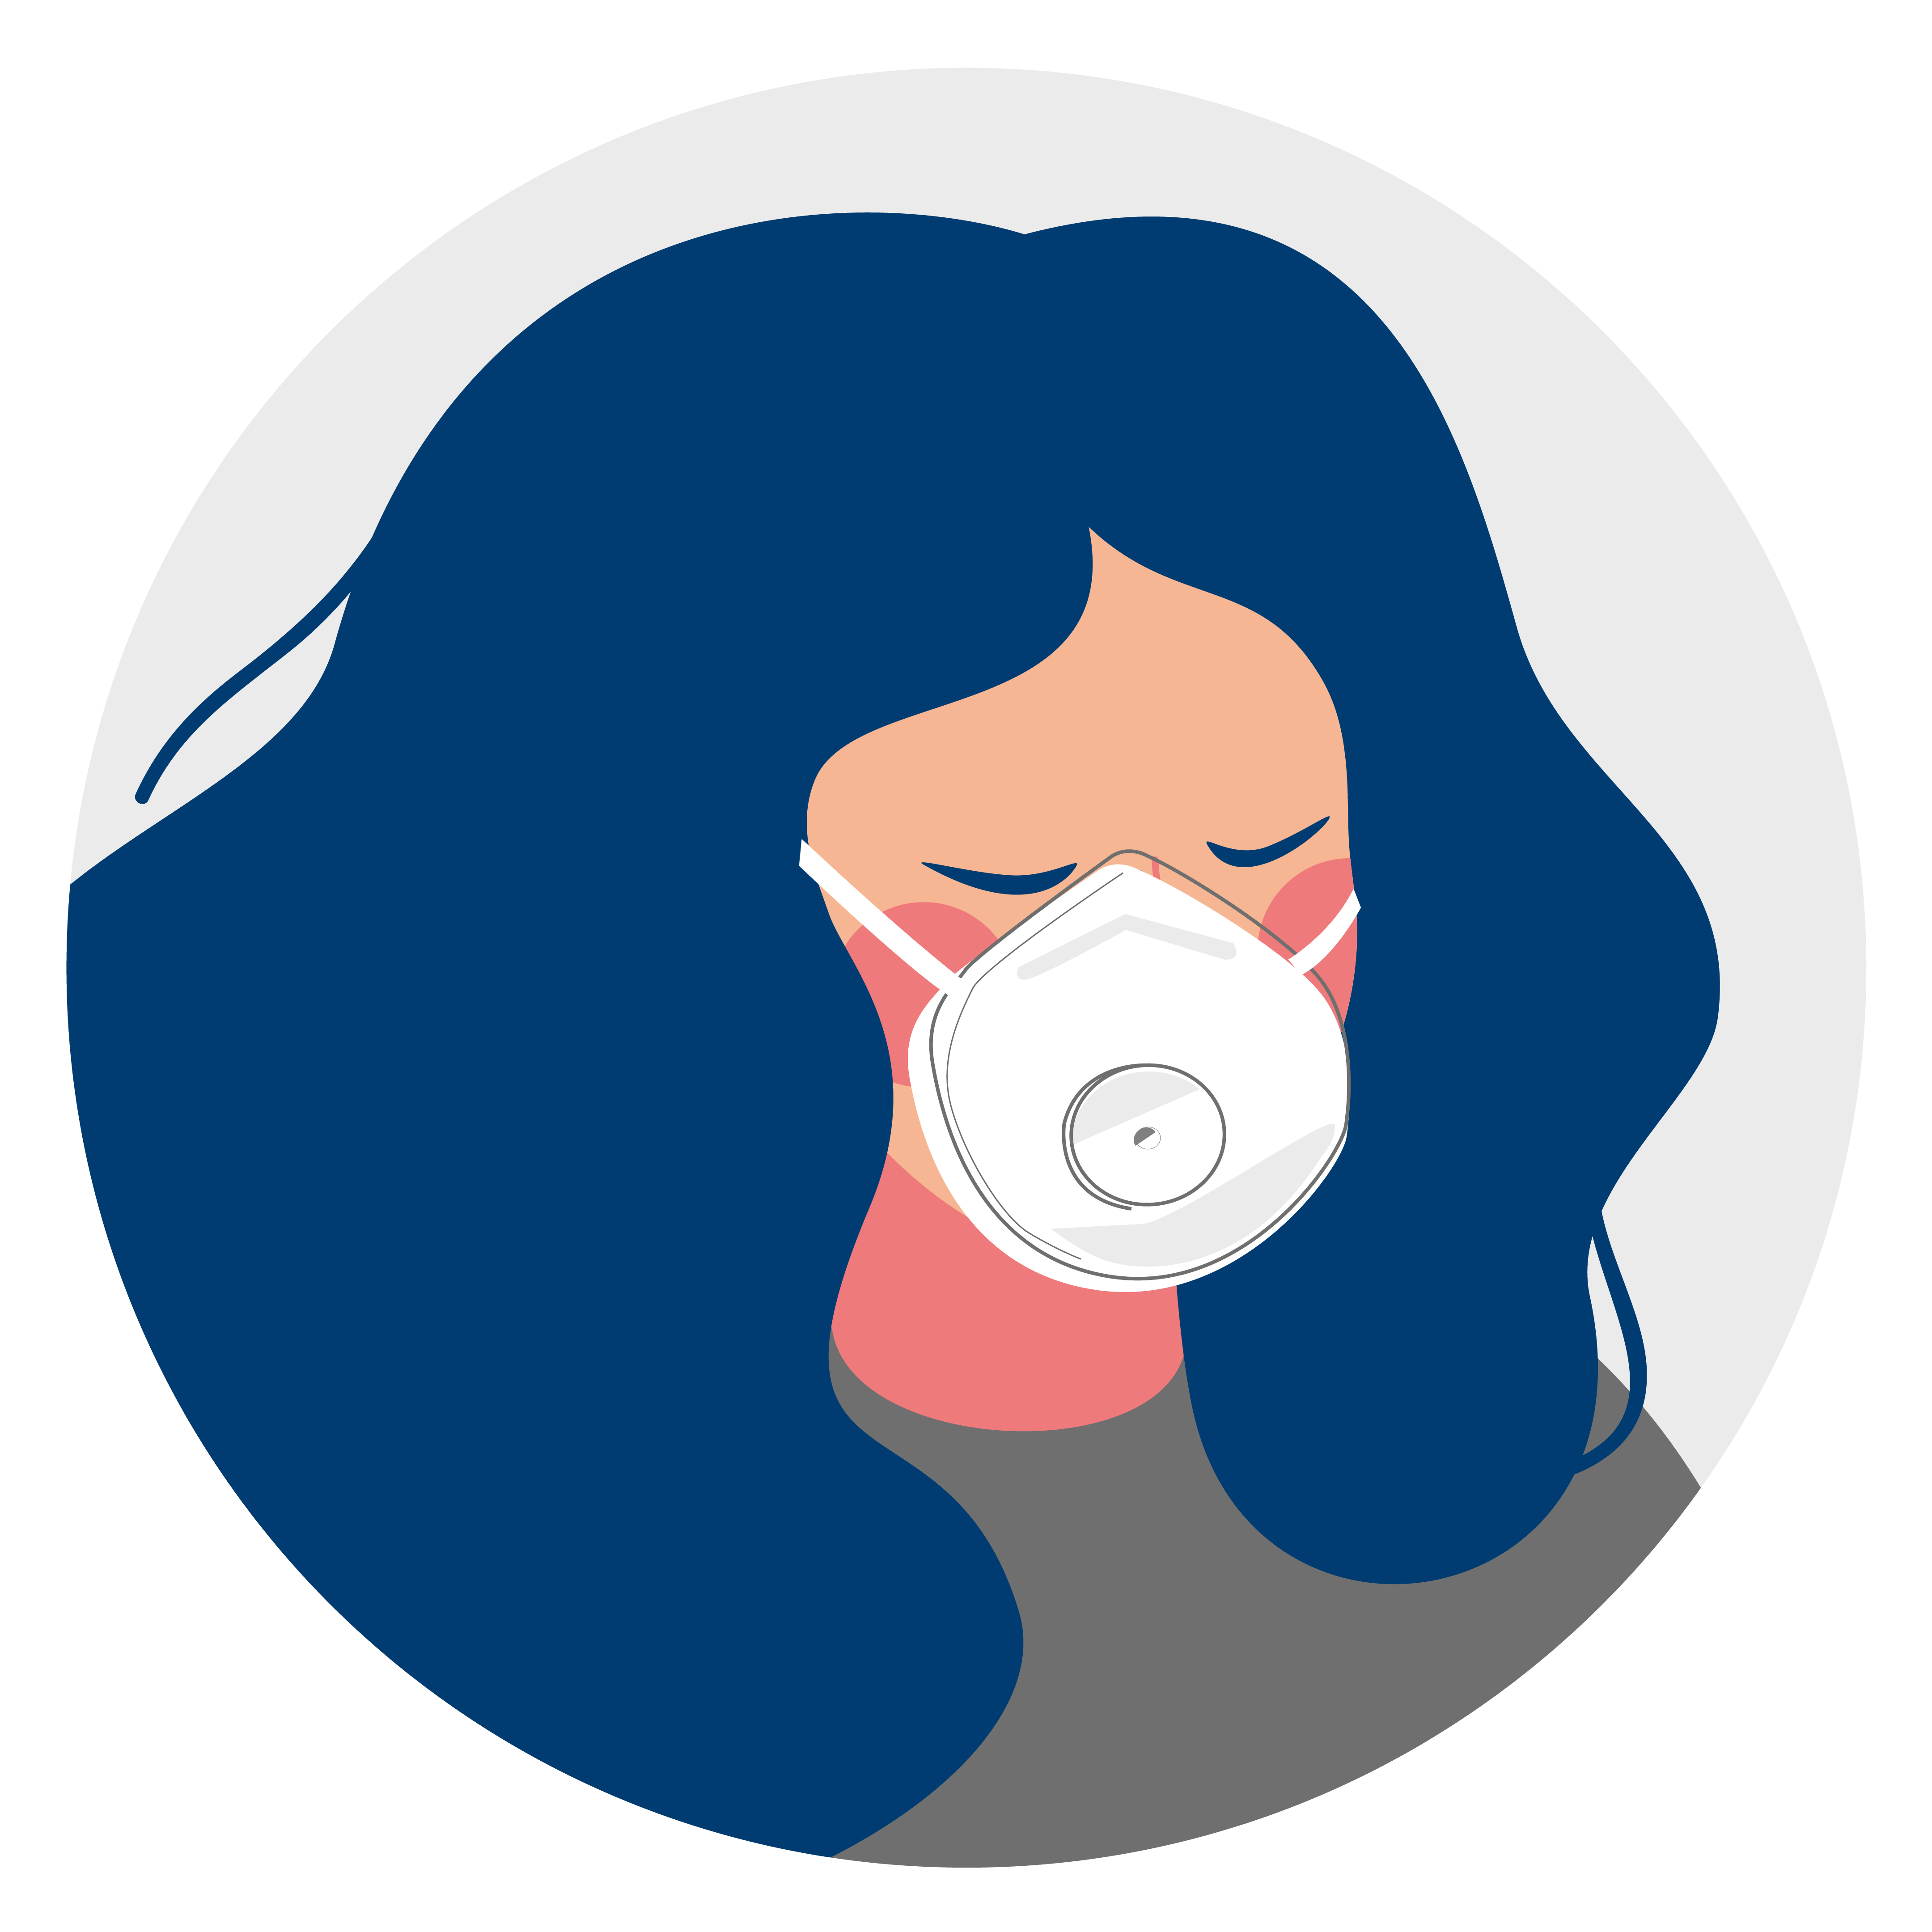 Illustration of a person wearing an N95 mask